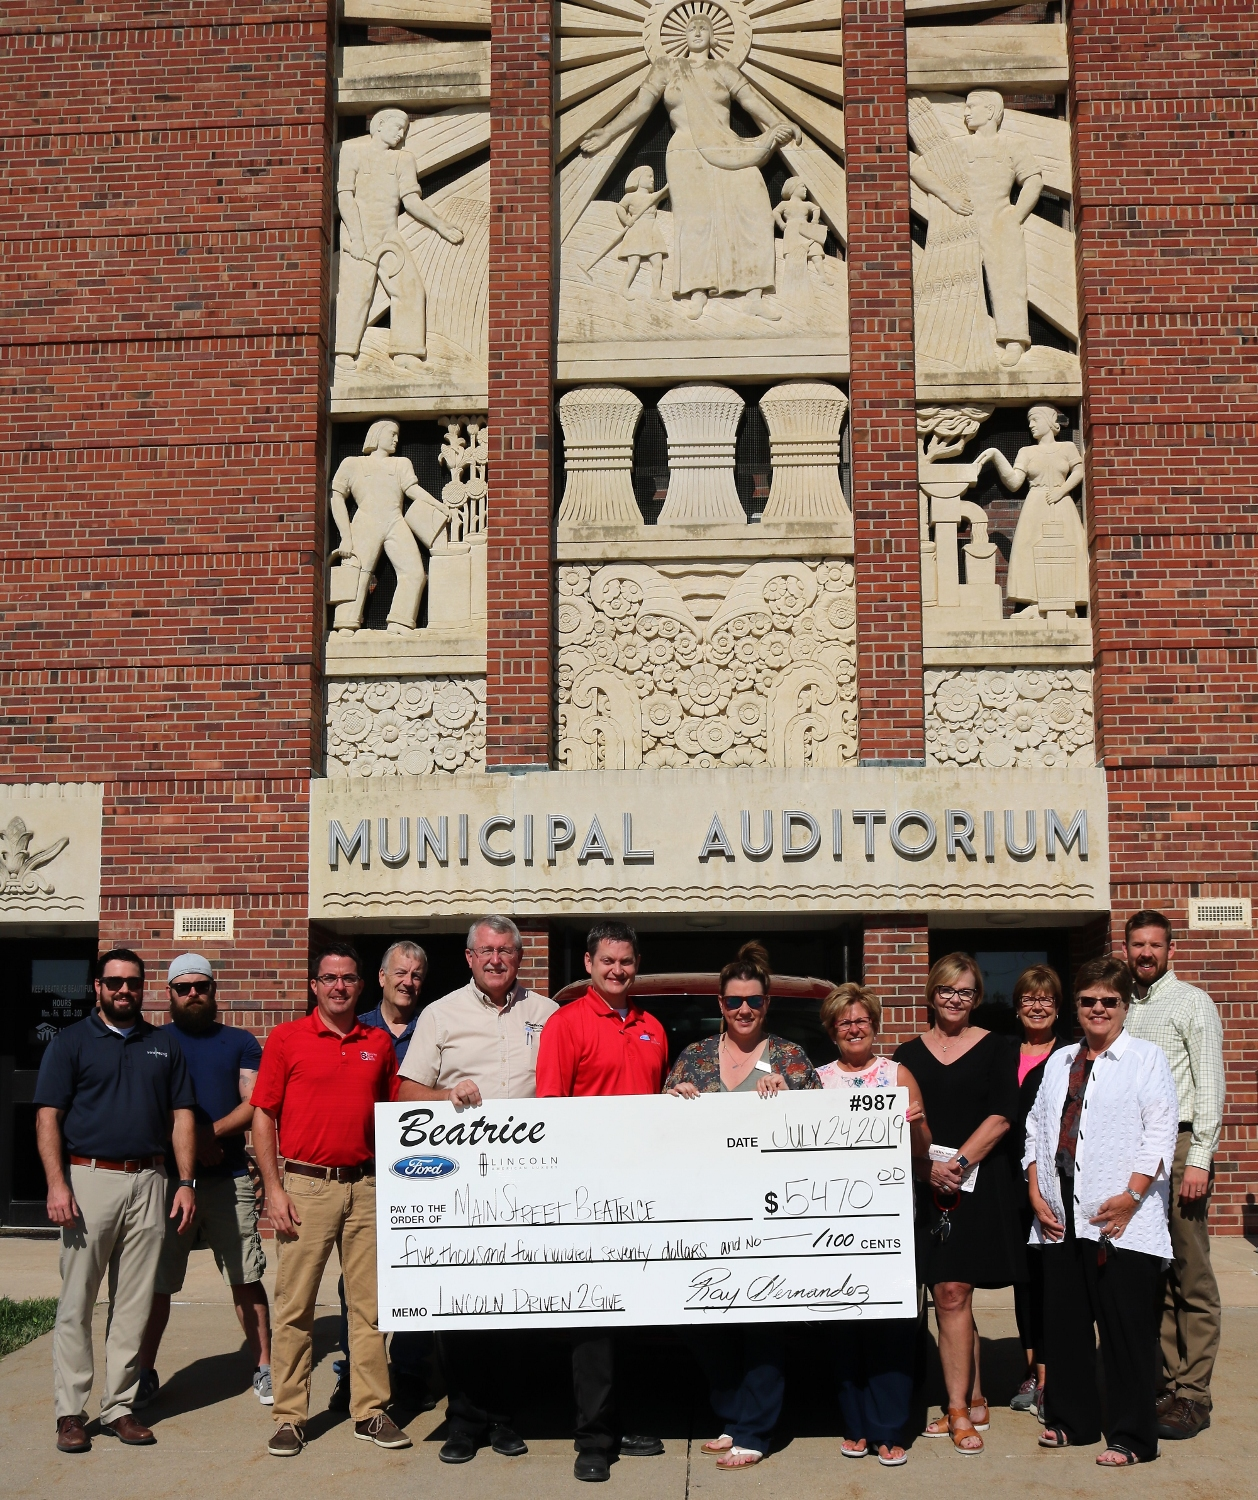 Lincoln Driven to Give Event raises $5,470 for Main Street Beatrice